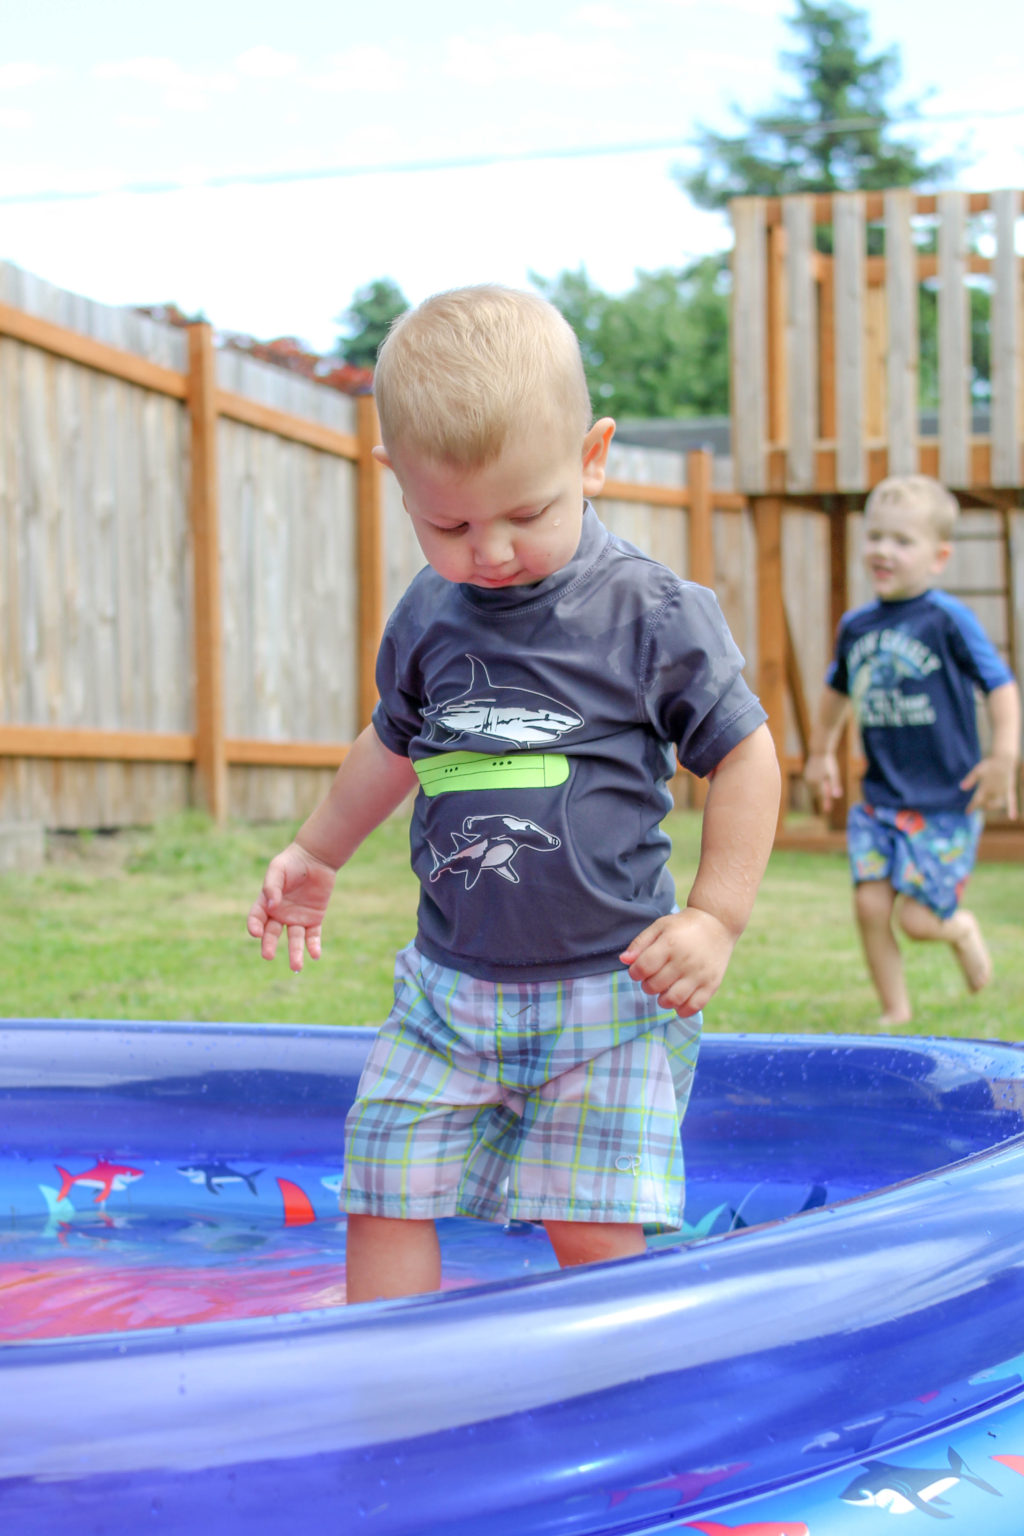 Toddler boy standing in wading pool while preschool boy runs toward him